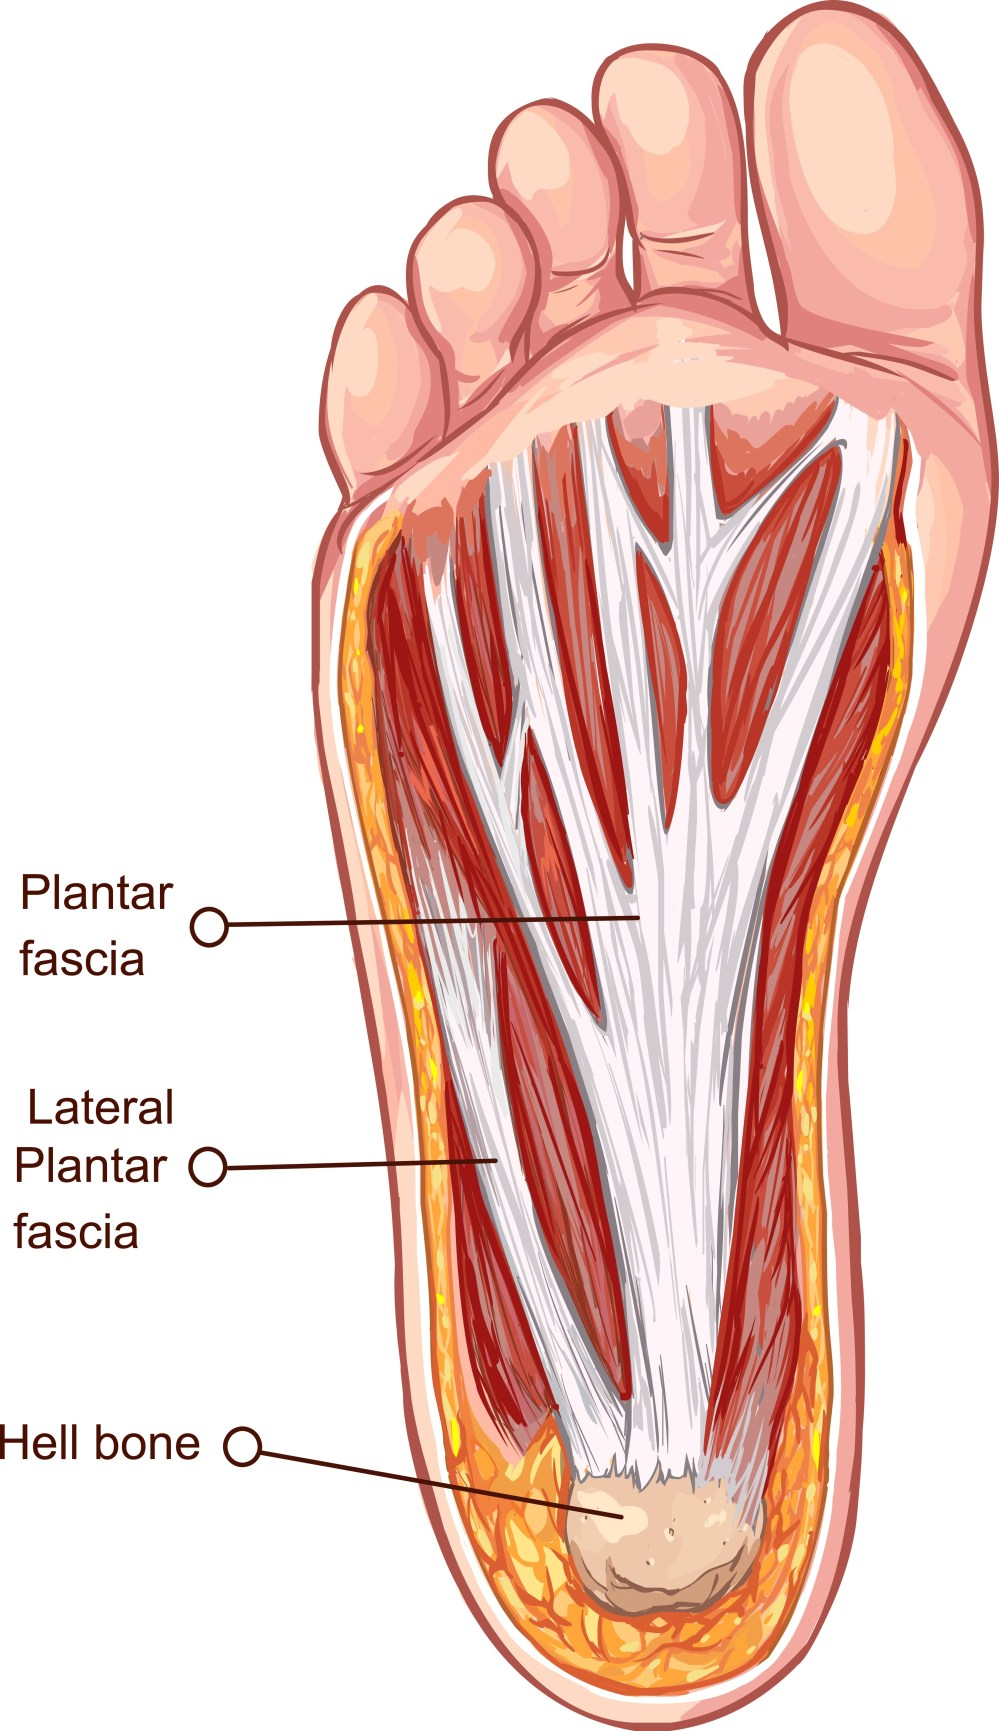 medium resolution of although plantar fasciitis and plantar fascosis inflammation and deterioration of the plantar fascia are known to be the typical diagnosis of plantar heel